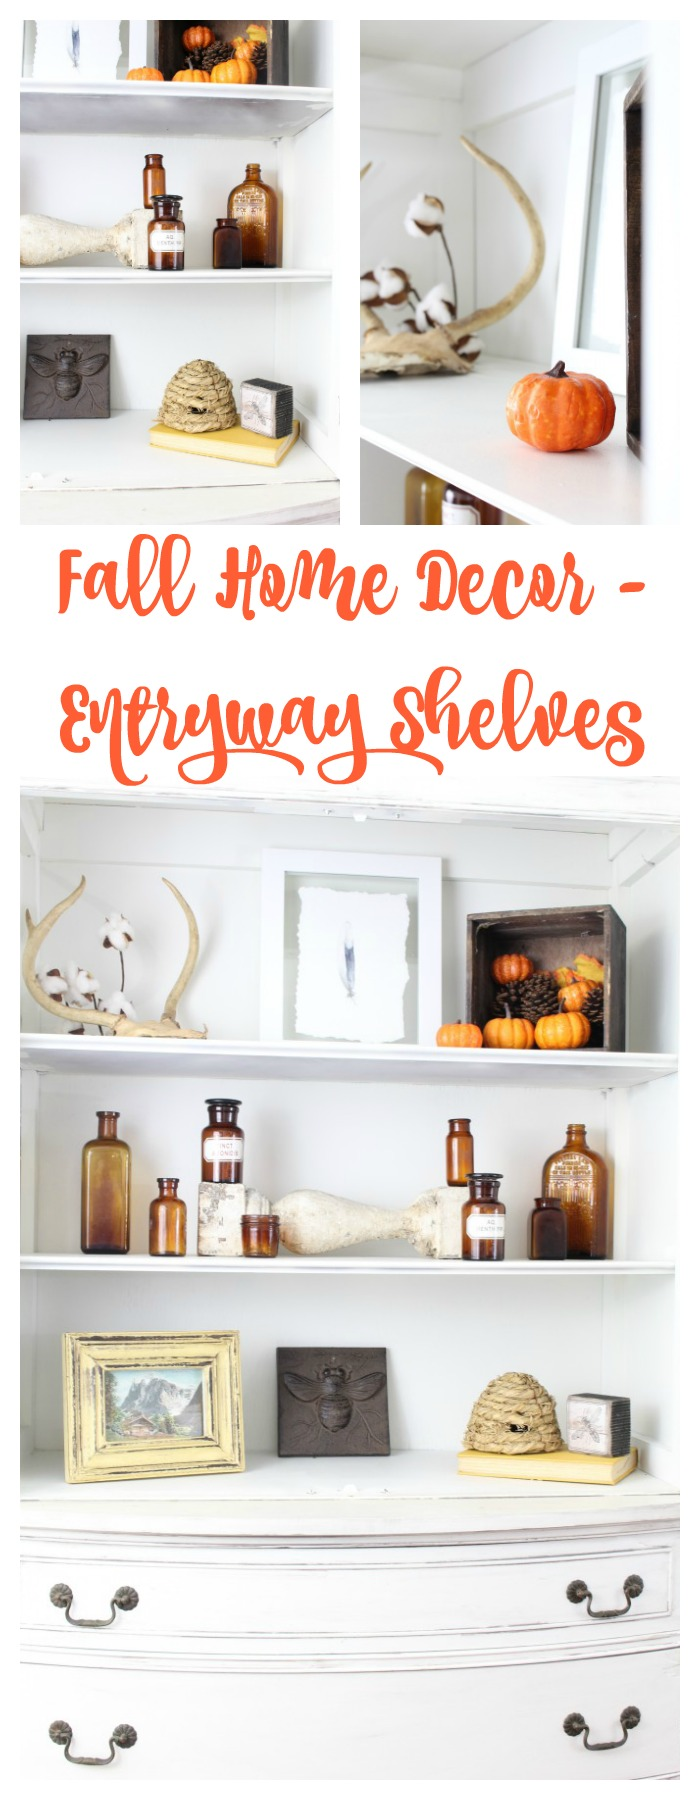 Fall home decor entryway shelves